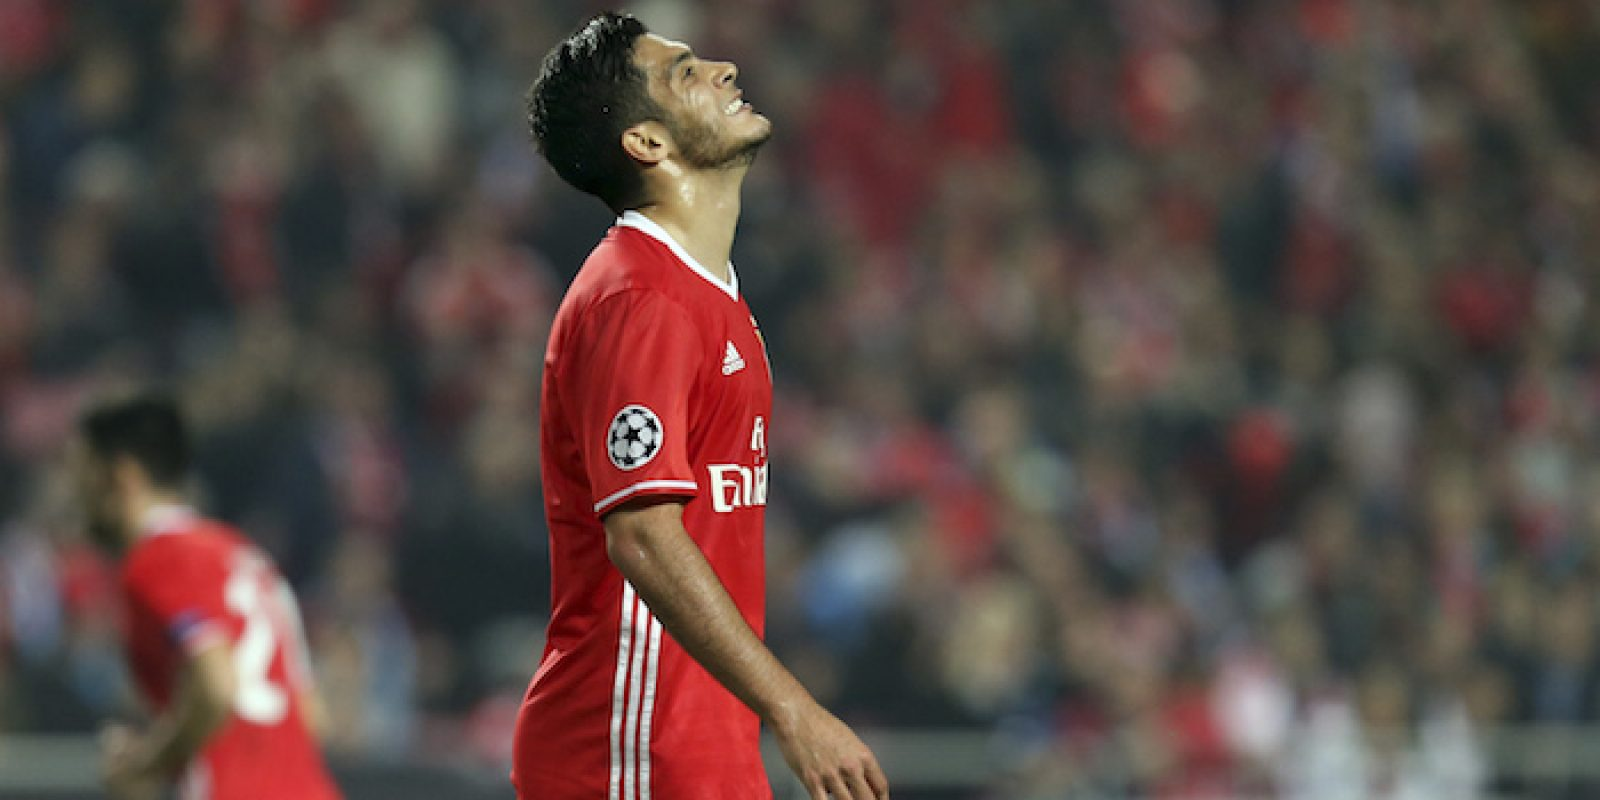 © Copyright 2016 The Associated Press. All rights reserved.. Imagen Por: Raúl Jiménez anota y el Benfica avanza a octavos de la Champions/AP